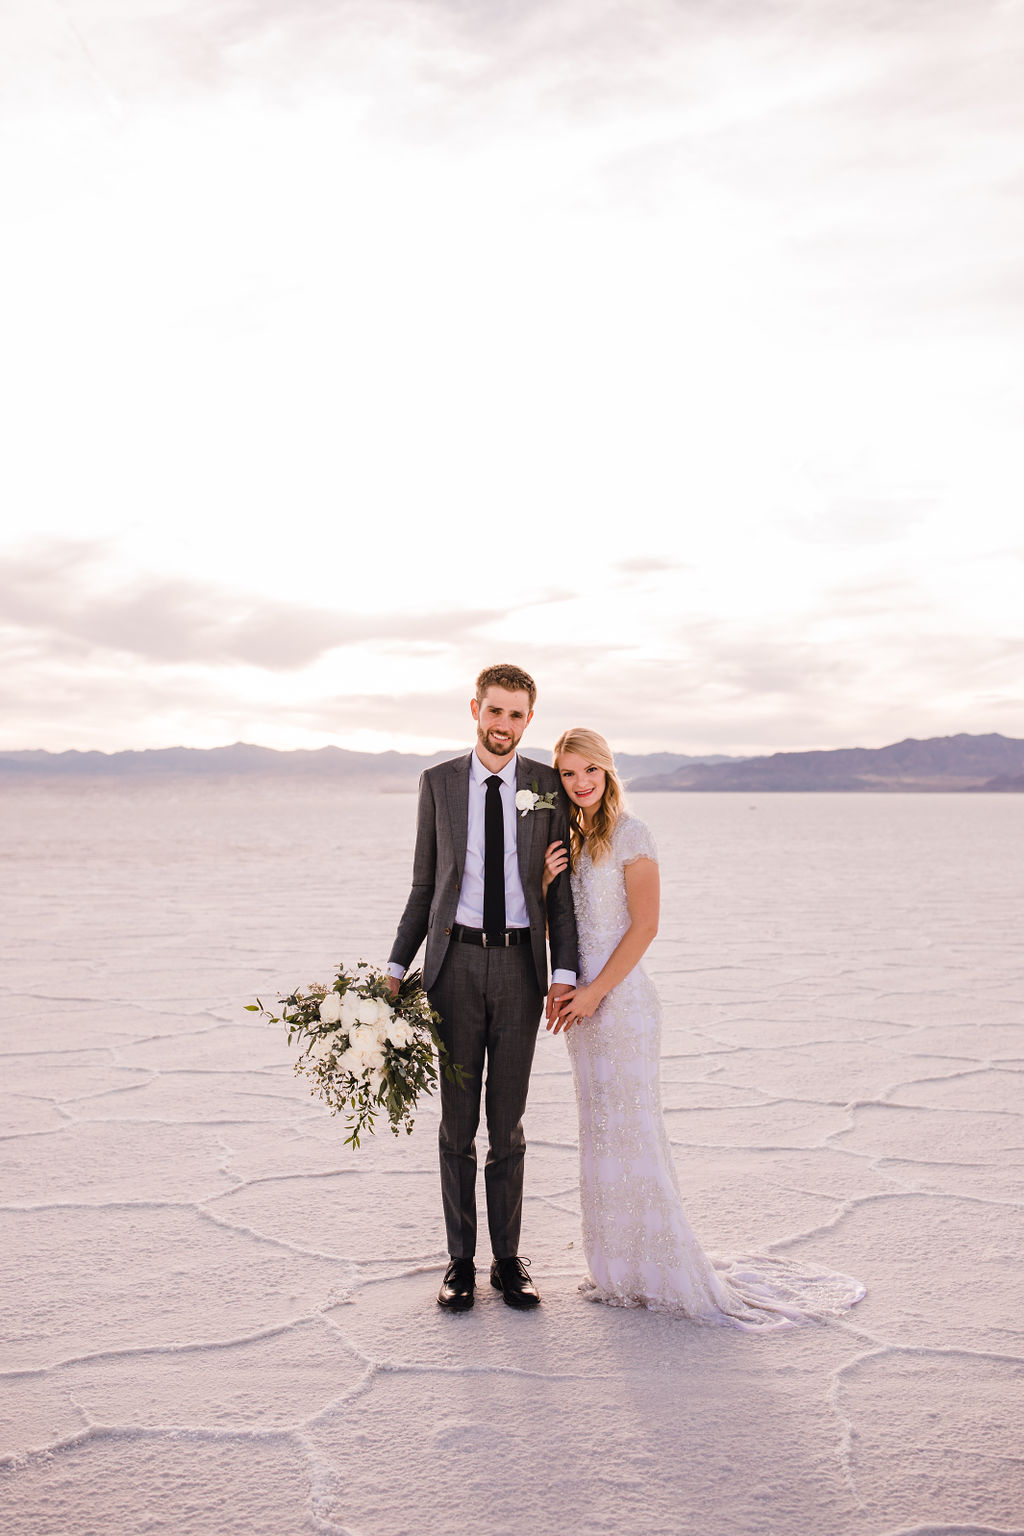 professional salt lake city utah formal photographer salt flats sunset pink sky white bouquet